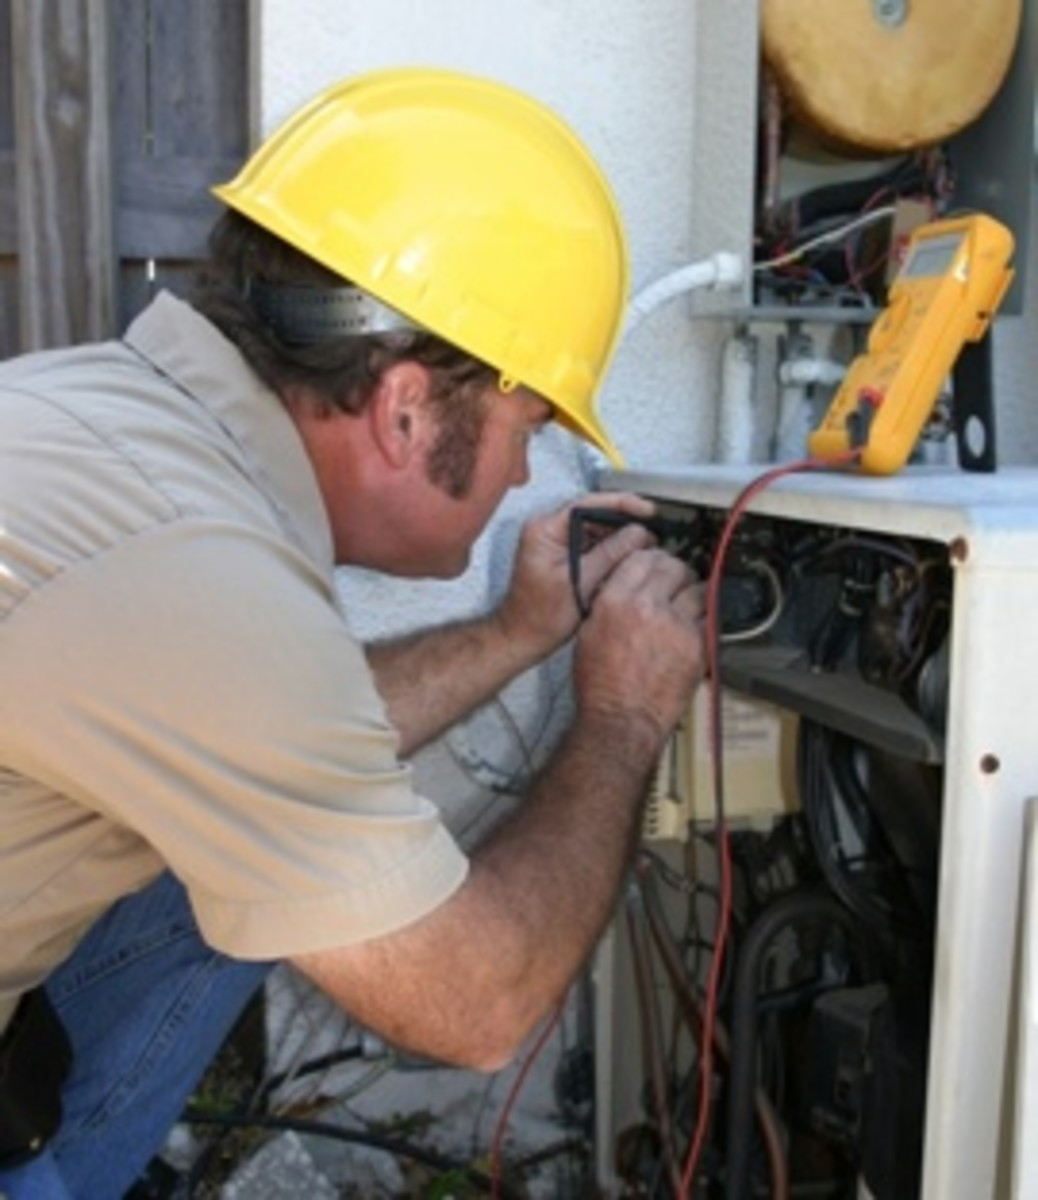 Introduction to electrical installation and wiring regulations